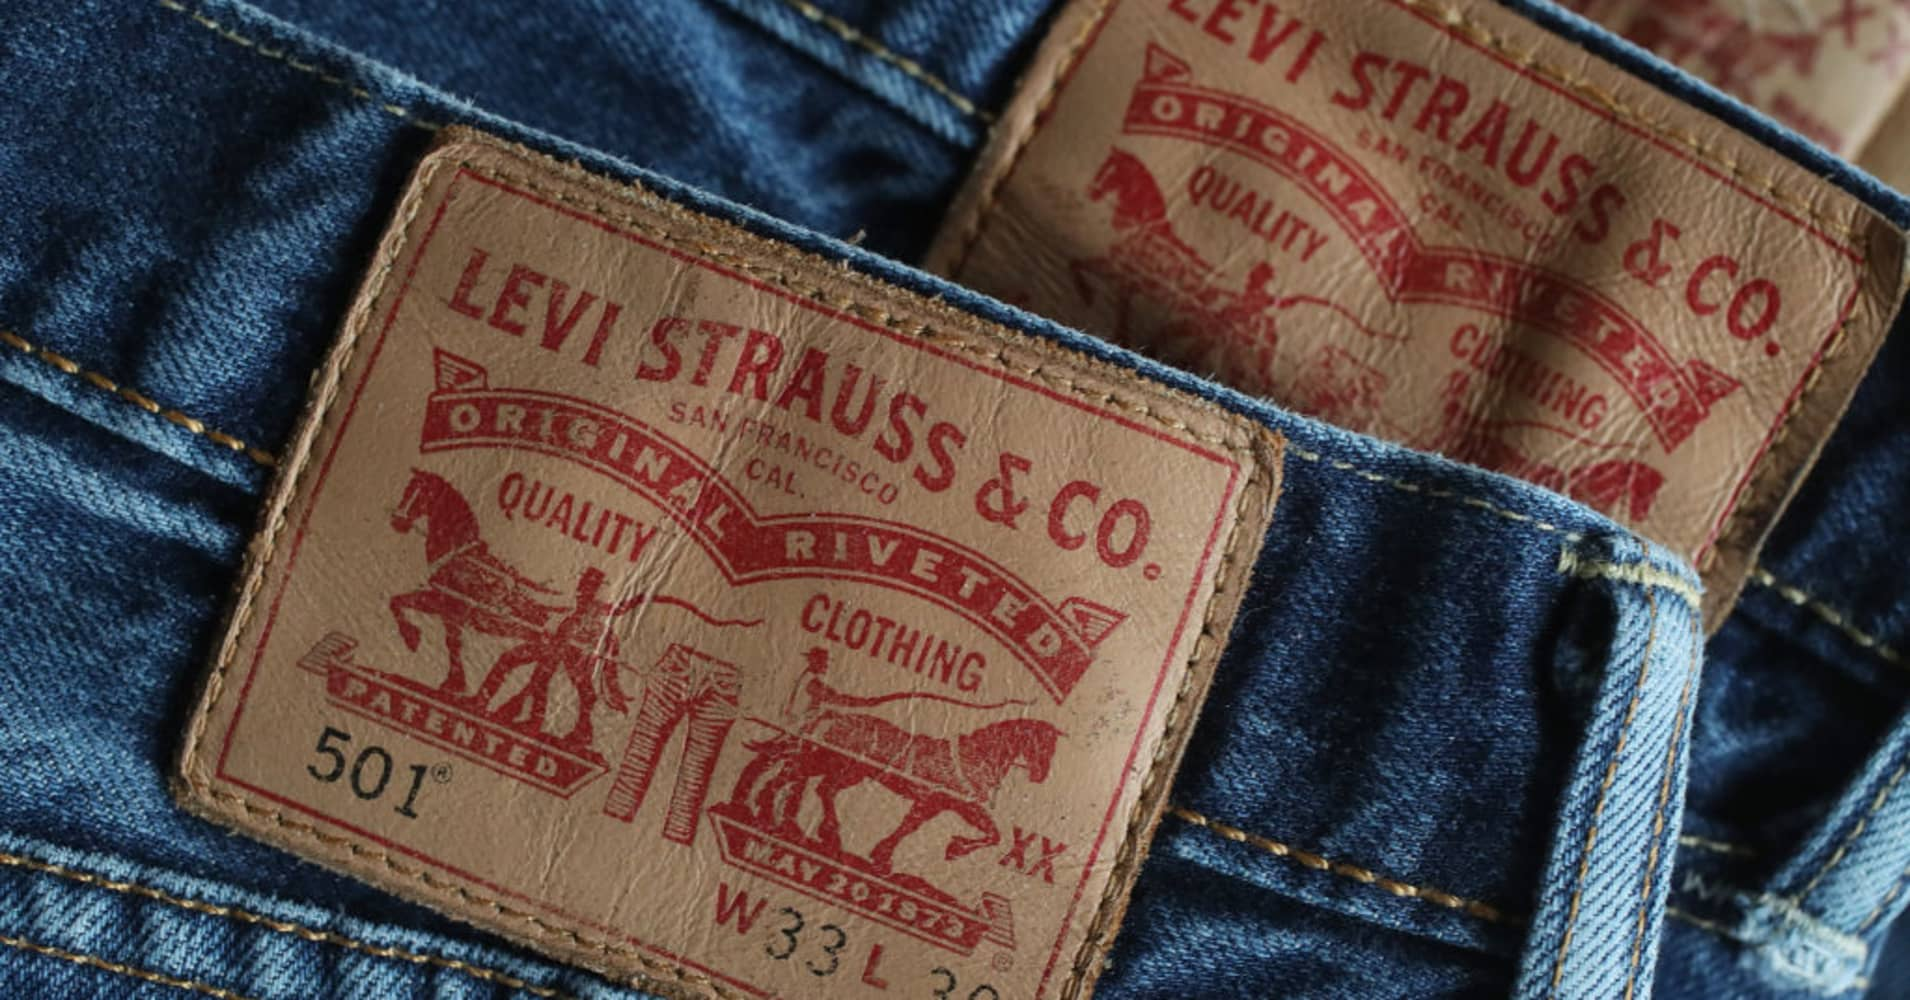 f0f8521f25 Levi Strauss plans to go public — again. Files IPO under symbol LEVI